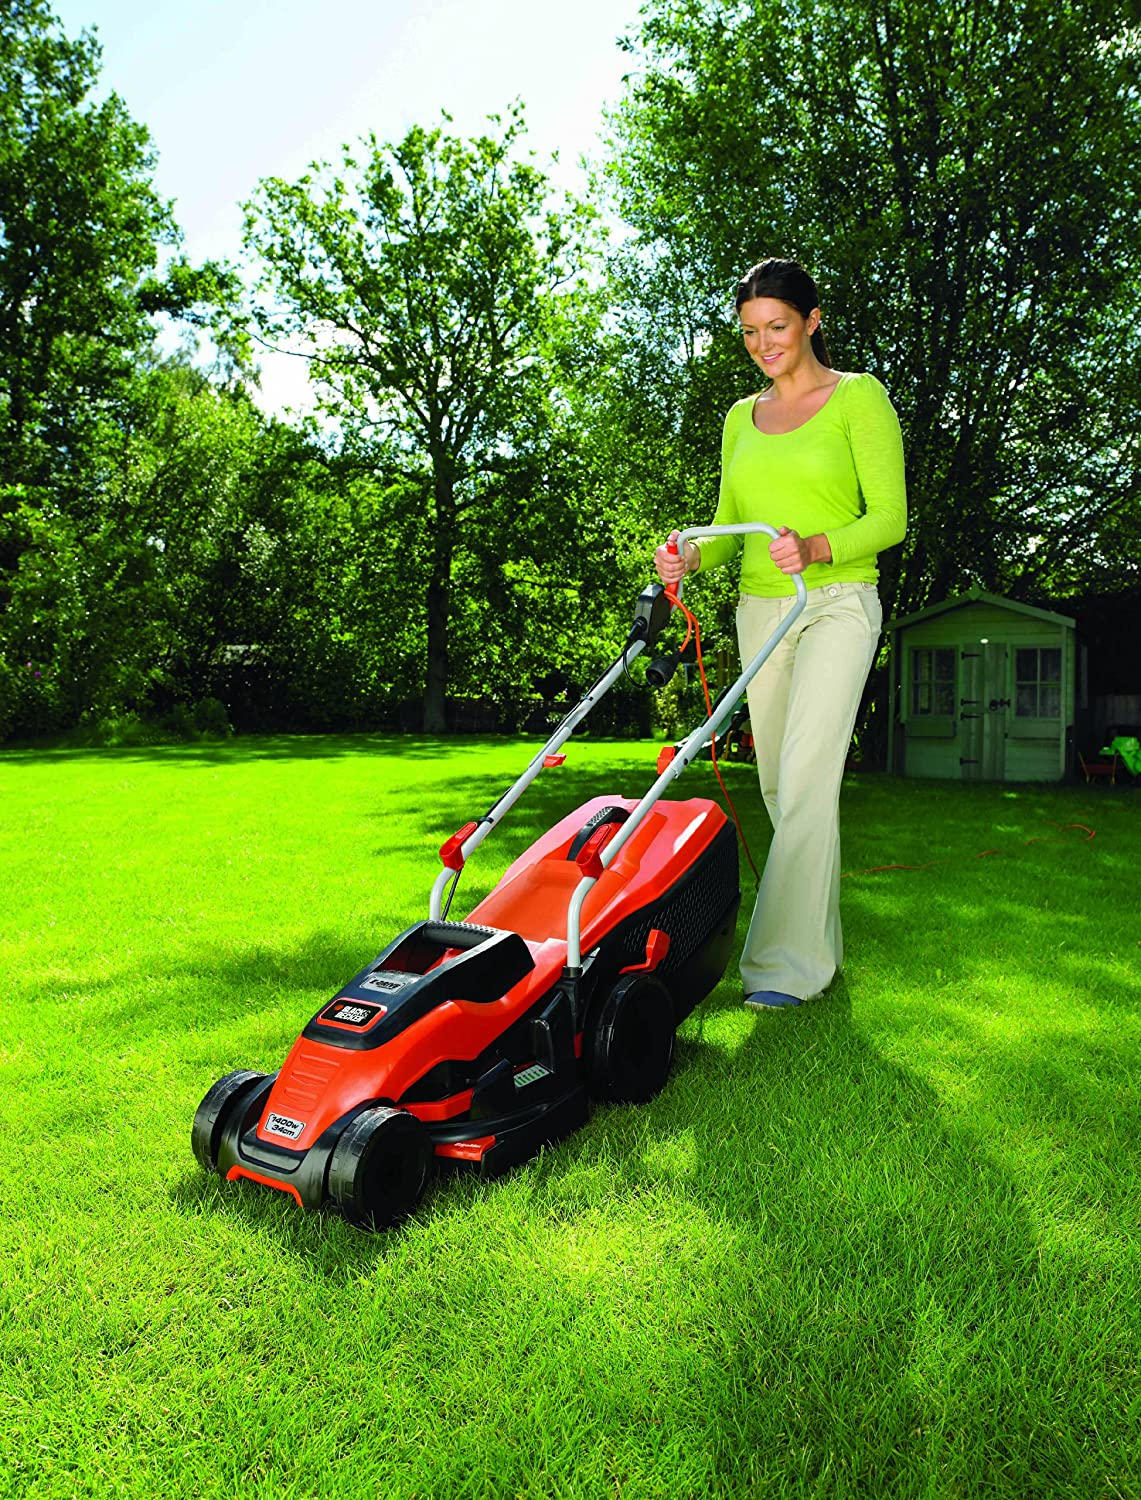 BLACK+DECKER 1400W Edge-Max Lawn Mower with 34 cm Cut/40 L Box Black & Decker EMAX34S-GB